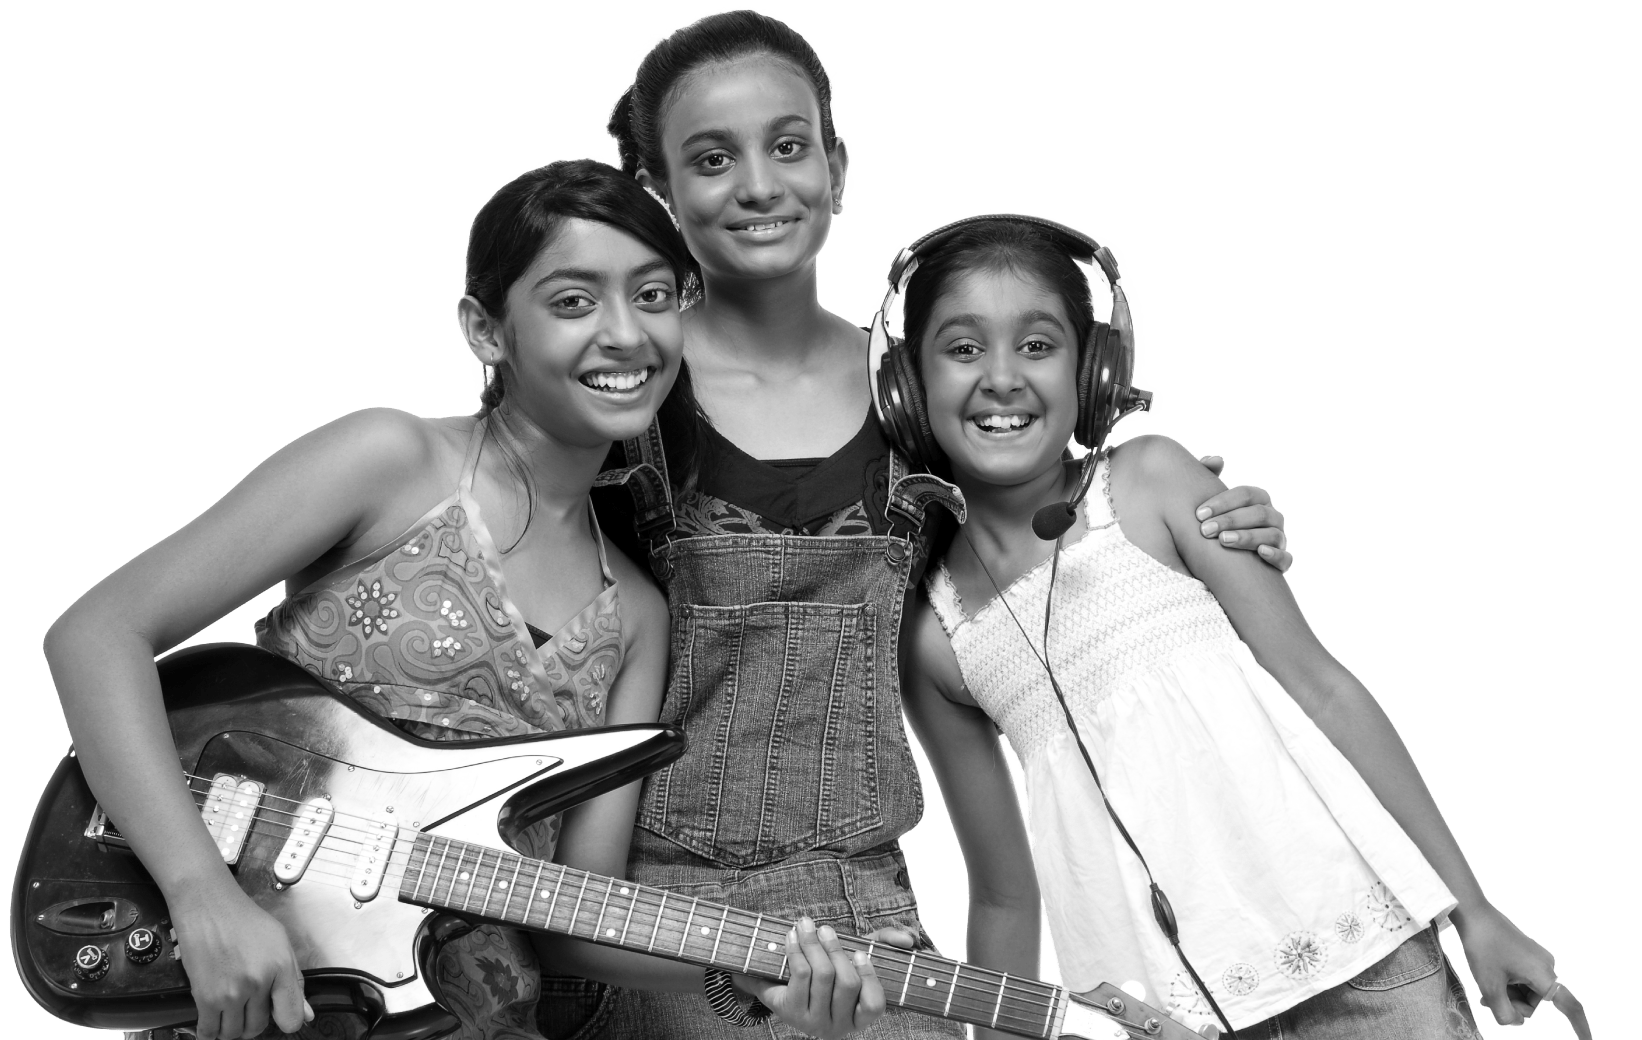 Youth girl musicians